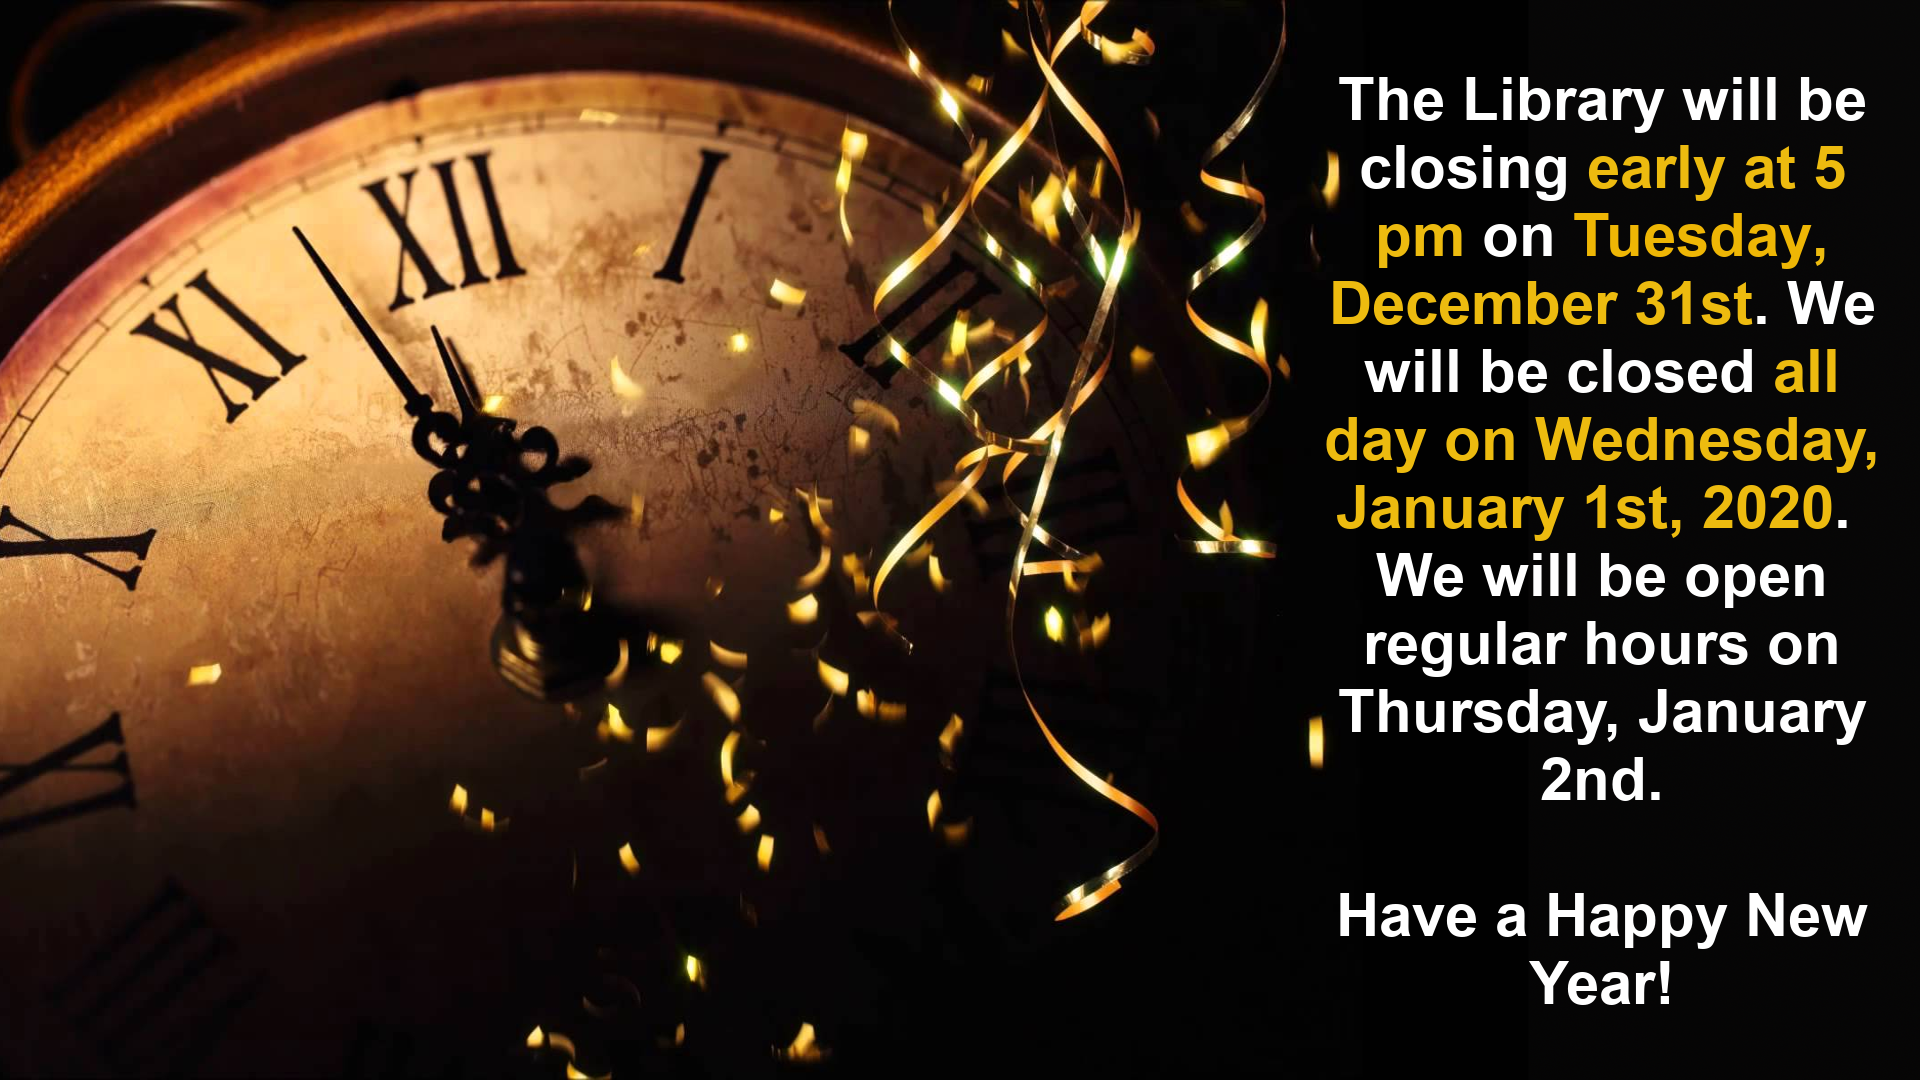 The Library will be closing early at 5 pm on Tuesday, December 31 and will be closed all day on Wednesday, January 1, 2020. We will be open regular hours on January 2.